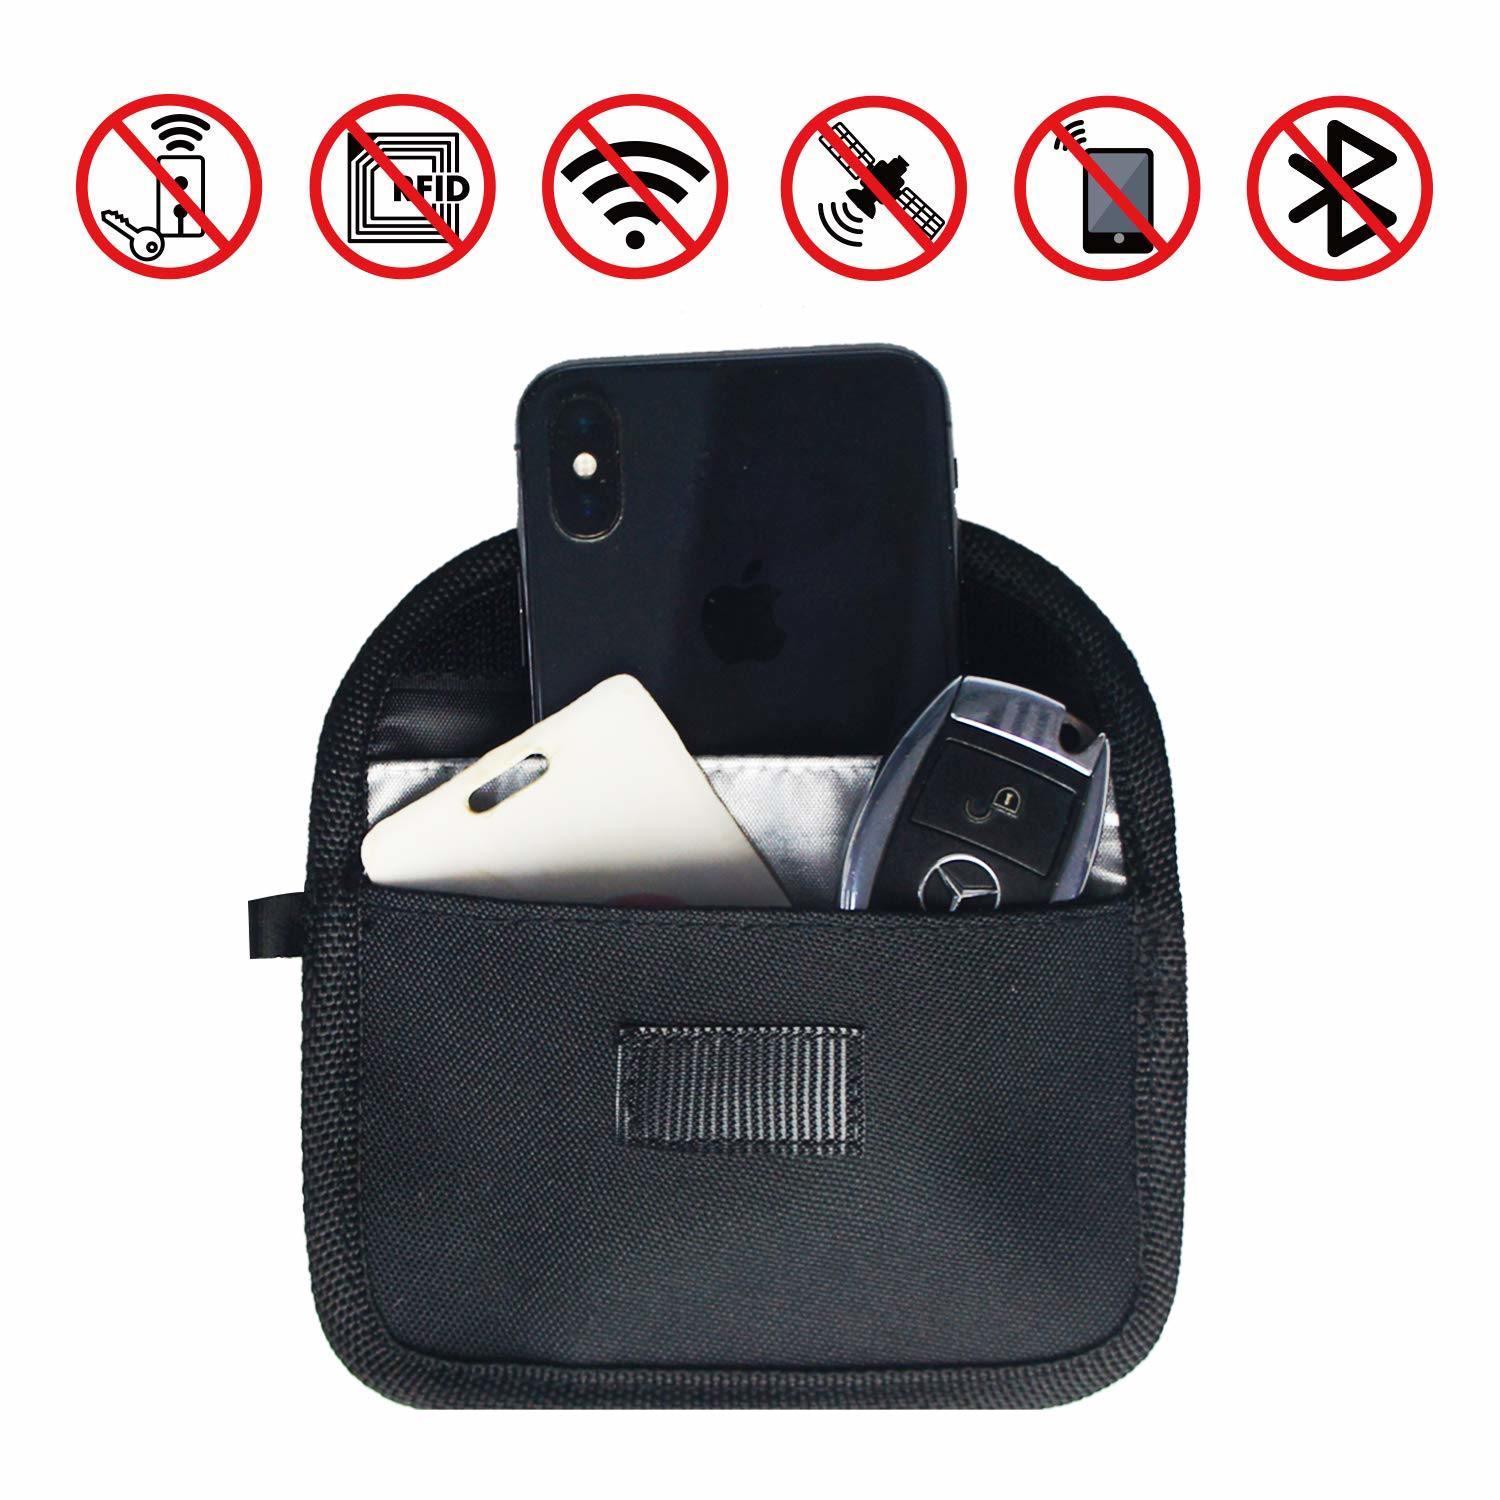 [Hot Item] RFID Signal Blocking Bag Shielding Pouch for Car Key Fob and  Cellphone Privacy Protection